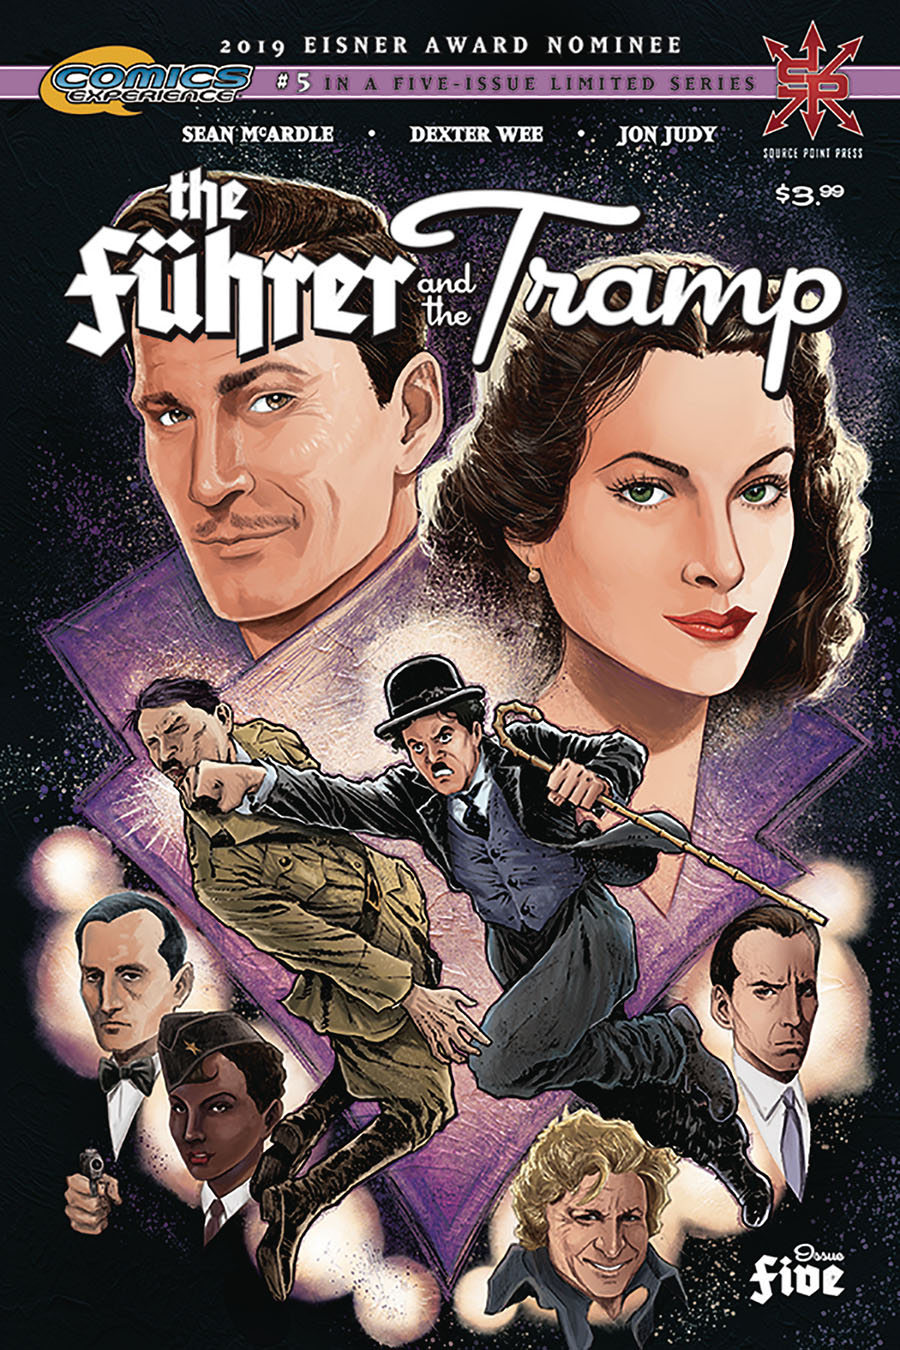 The Fuhrer and the Tramp #5 (2020)